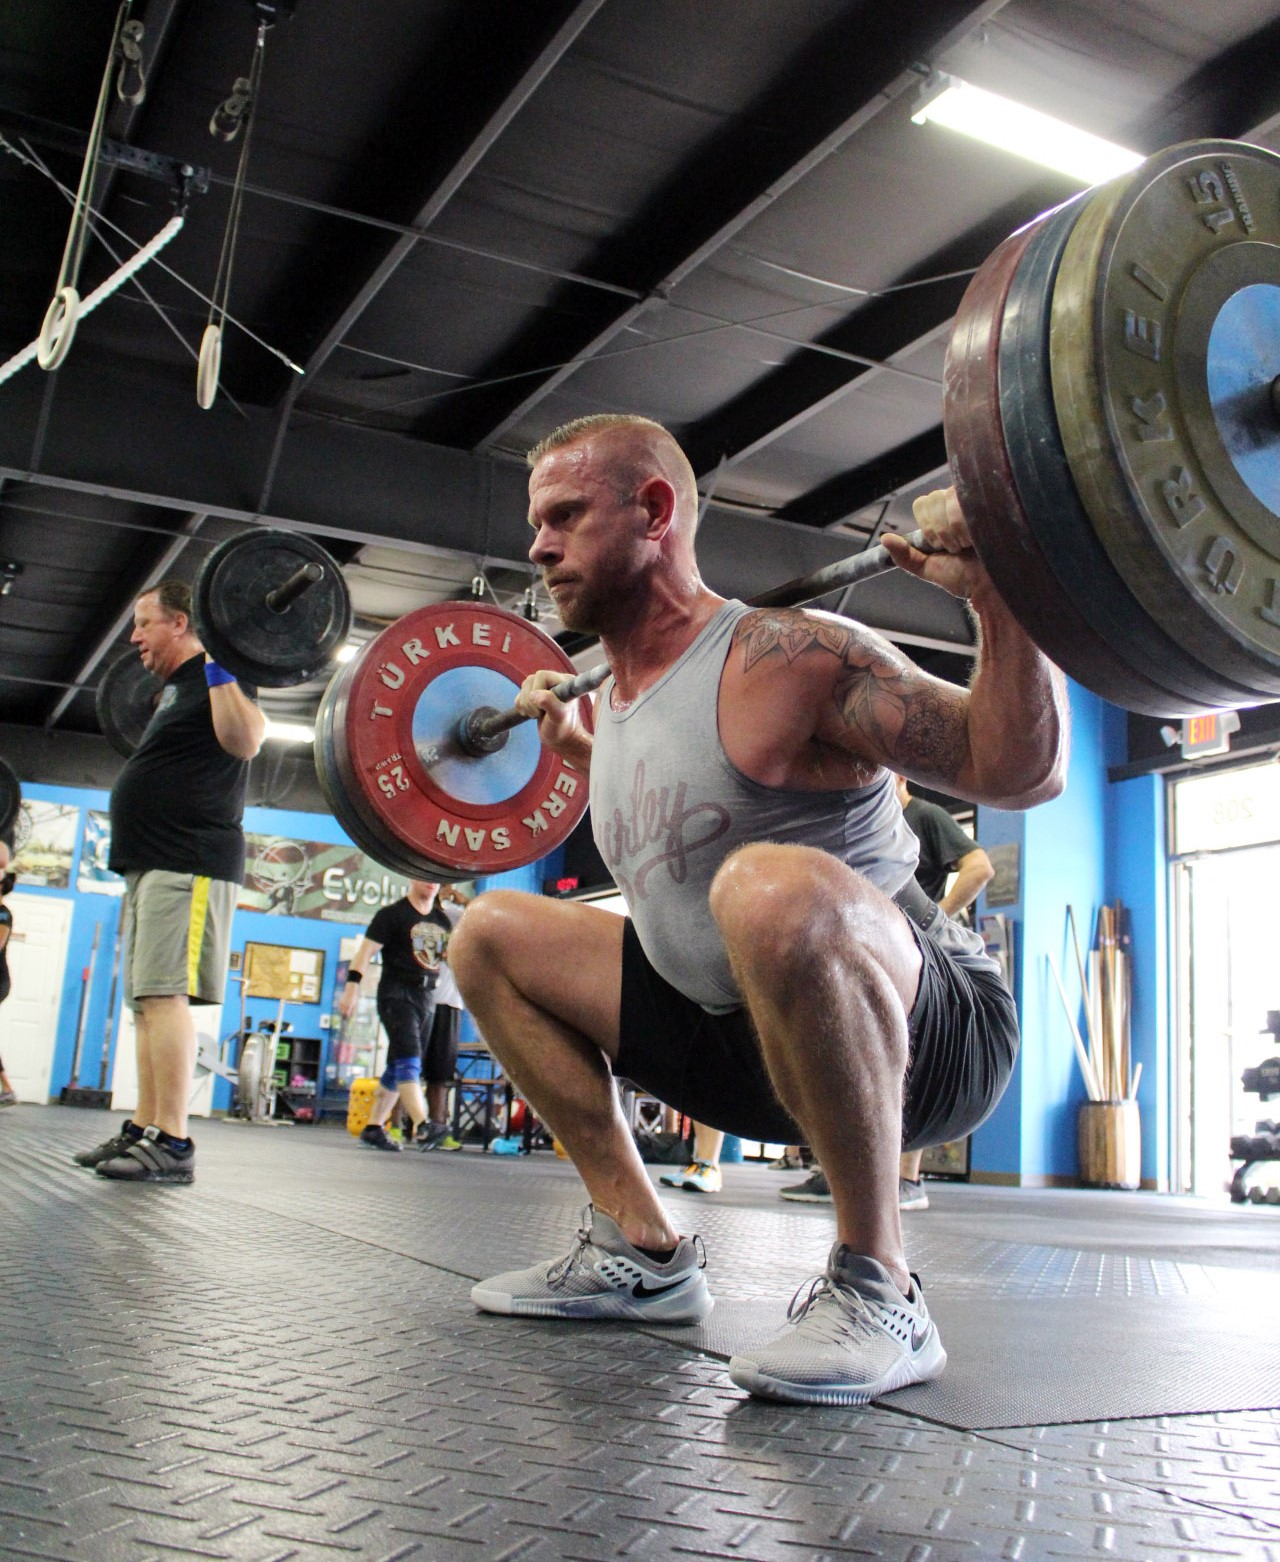 Ryan at the bottom of a Back Squat